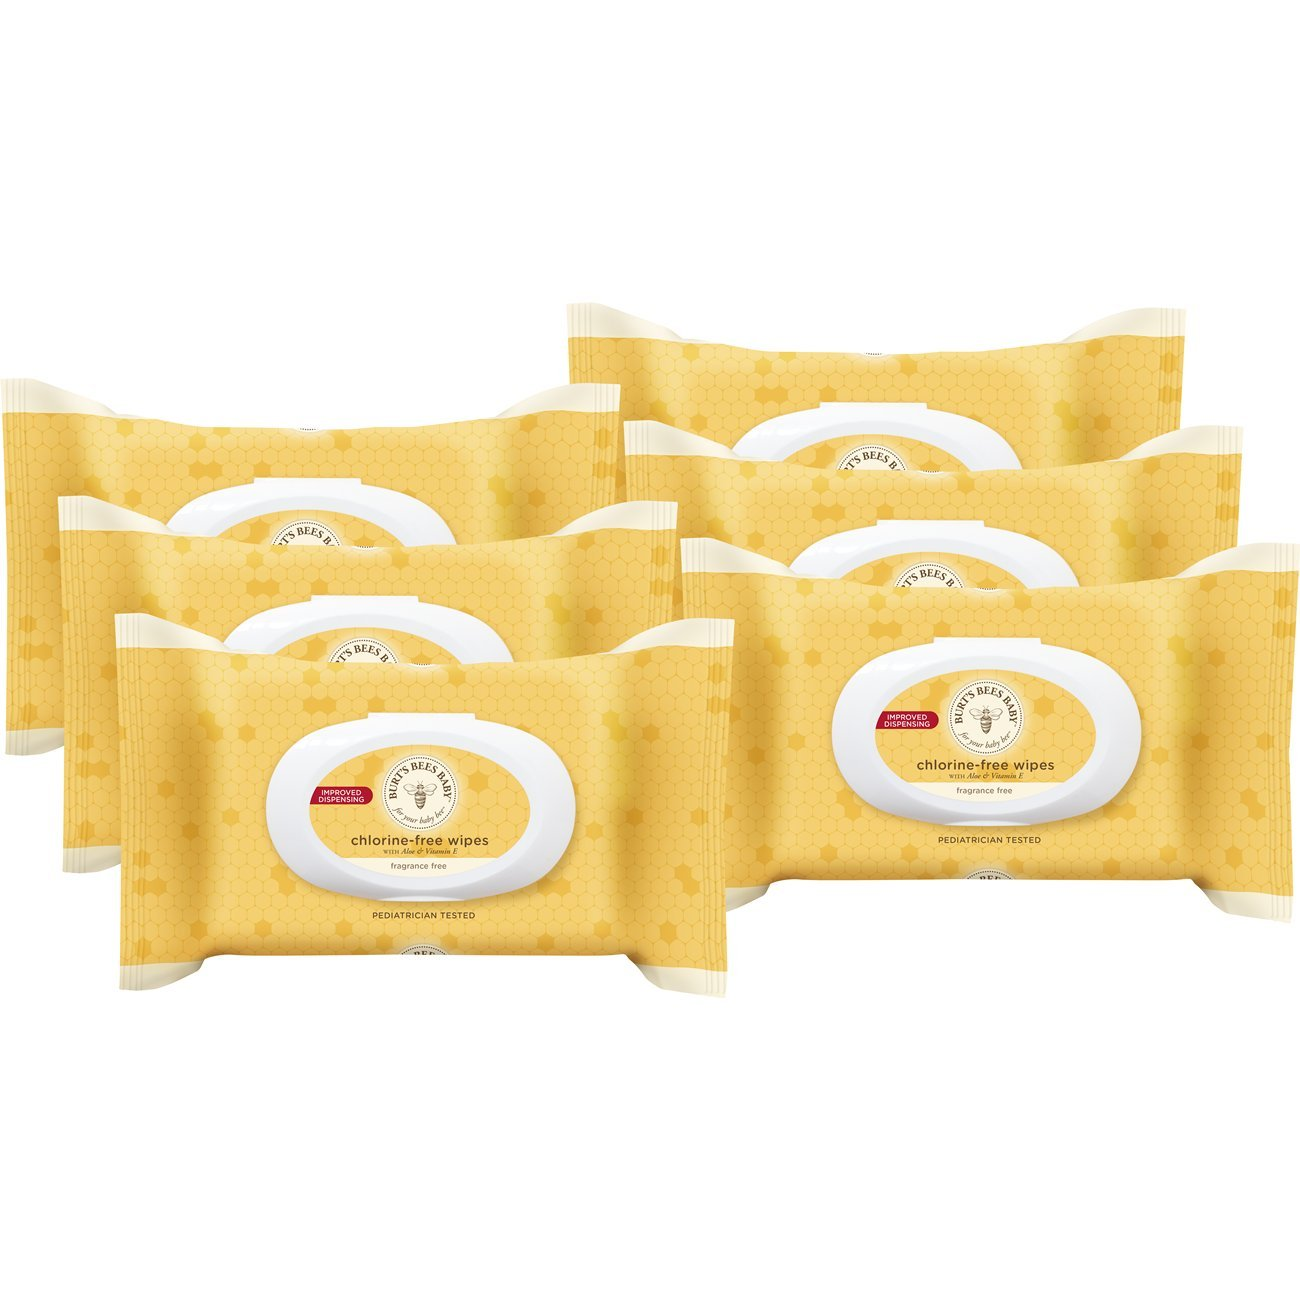 Burt's Bees Baby Chlorine-Free Wipes, Unscented Natural Baby Wipes – 72 Wipes (Pack of 6) Burt' s Bees 4332391987